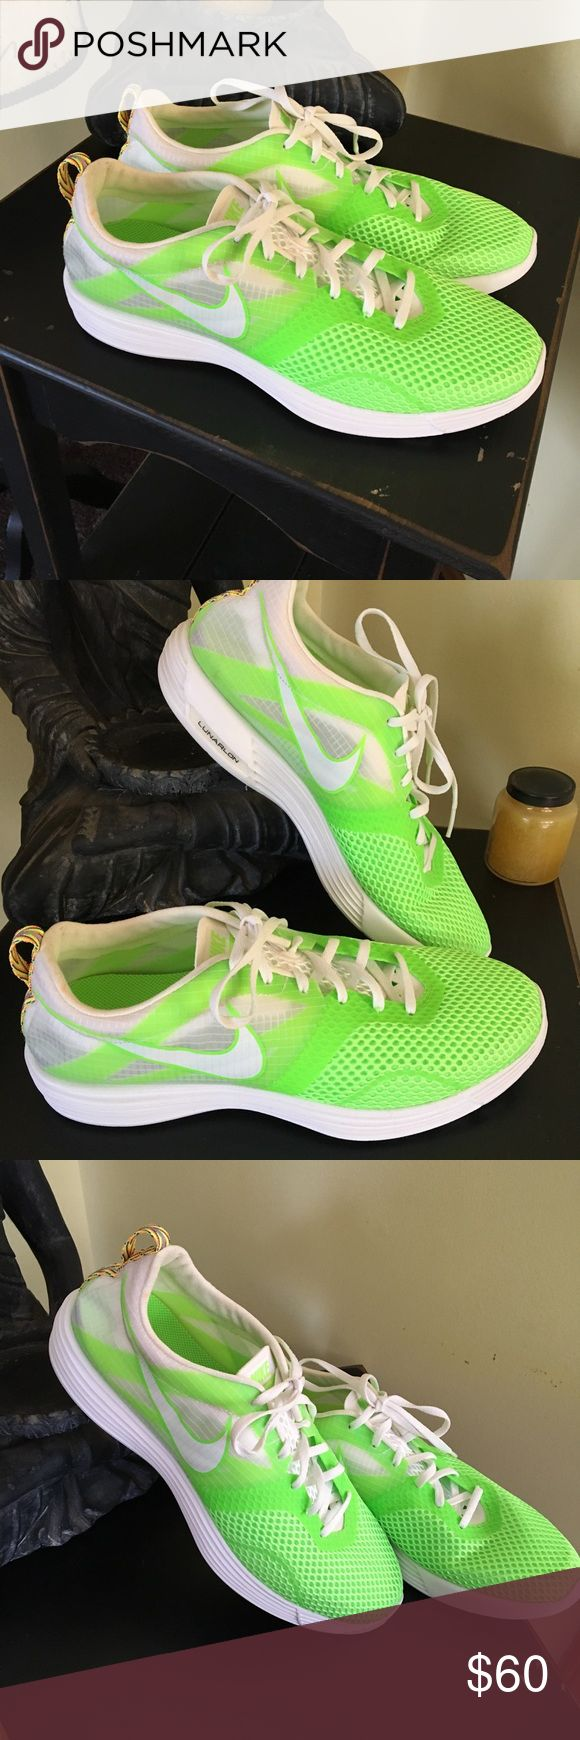 Nike LunarMTRL Montreal+ Men's running shoes NWOT. Never worn. Rare sneaker. Electric green and white. Has Nike+ capability. Make an offer! Discount on bundles! Nike Shoes Sneakers